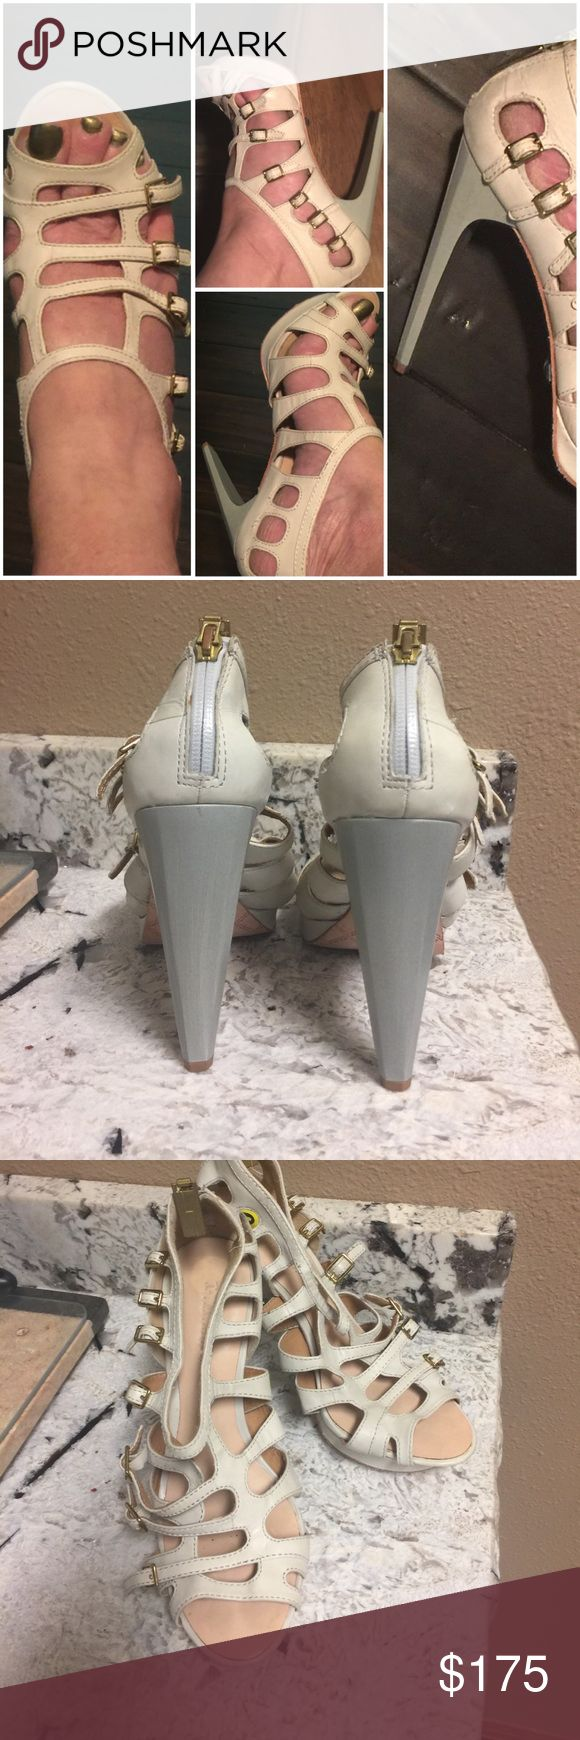 L.A.M.B. High heels L.A.M.B. Hot- Hot - Hot Cream strappy leather 5 inch heel gold buckle zip back shoes. Brand New - Size 9 L.A.M.B. Shoes Heels